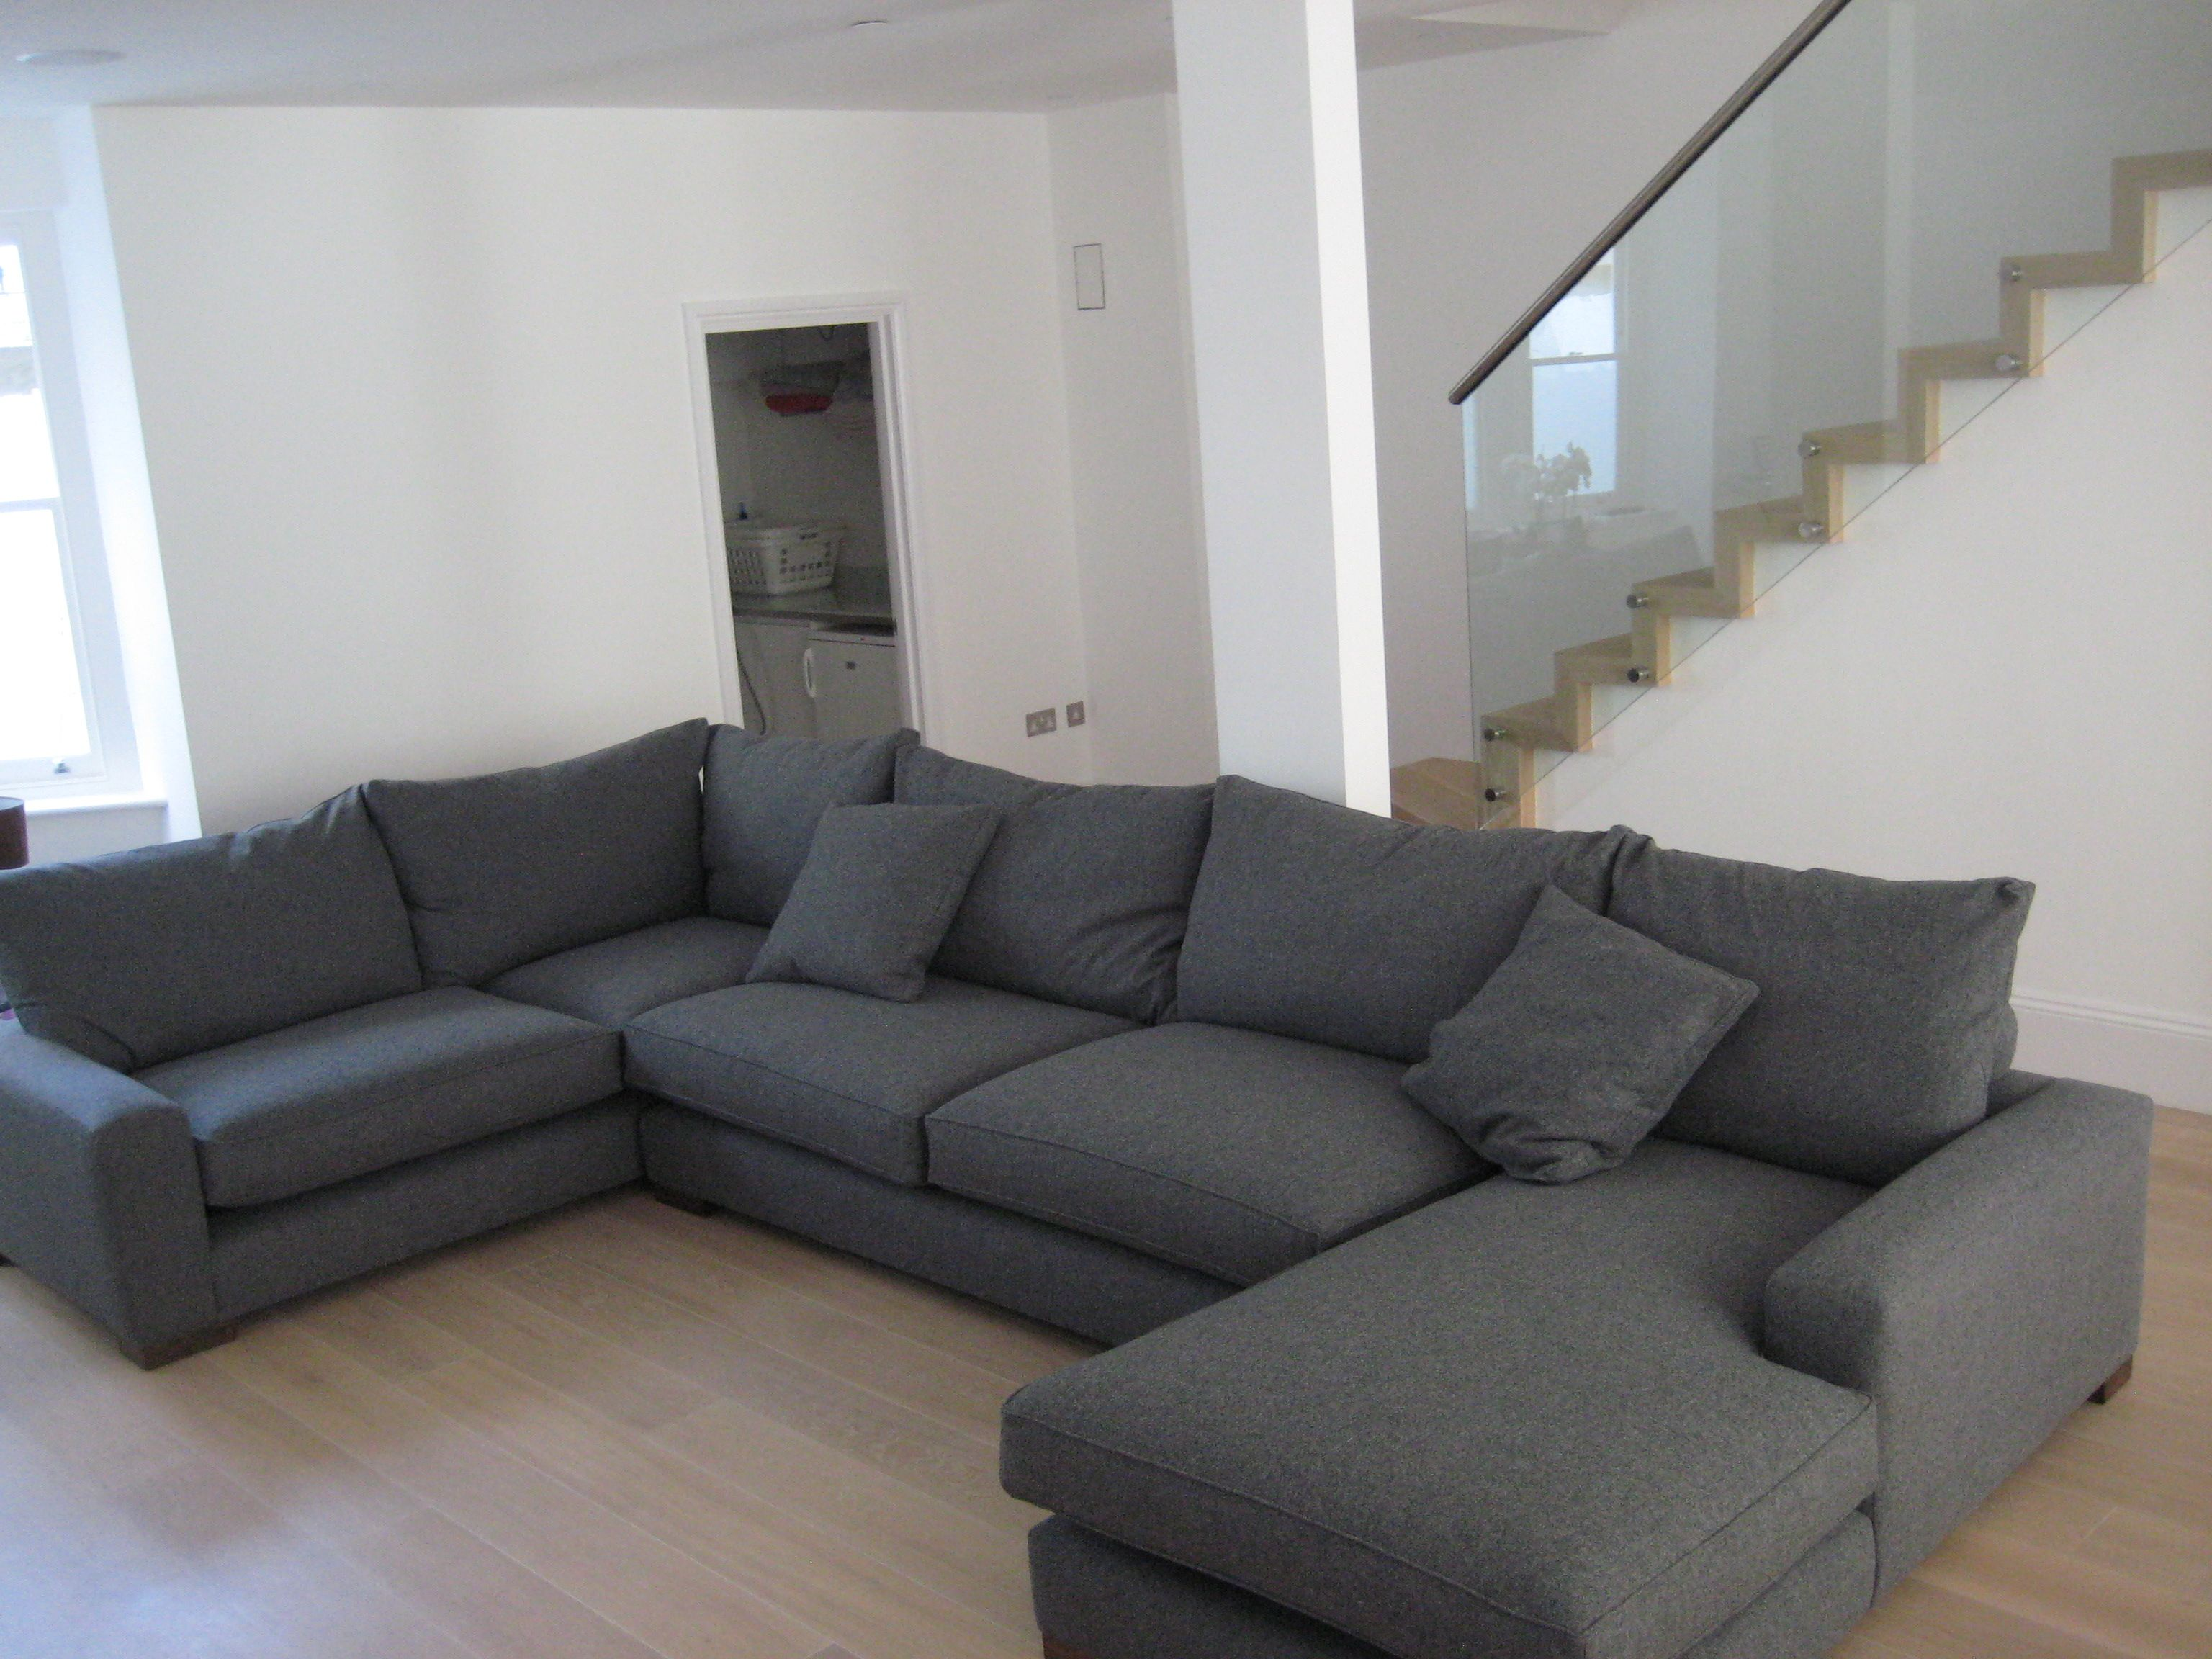 Left Chaise Sofa Sectional Slipcover Ivory Leather Repair Kit Bespoke Corner And Unit Based On The Freycinet